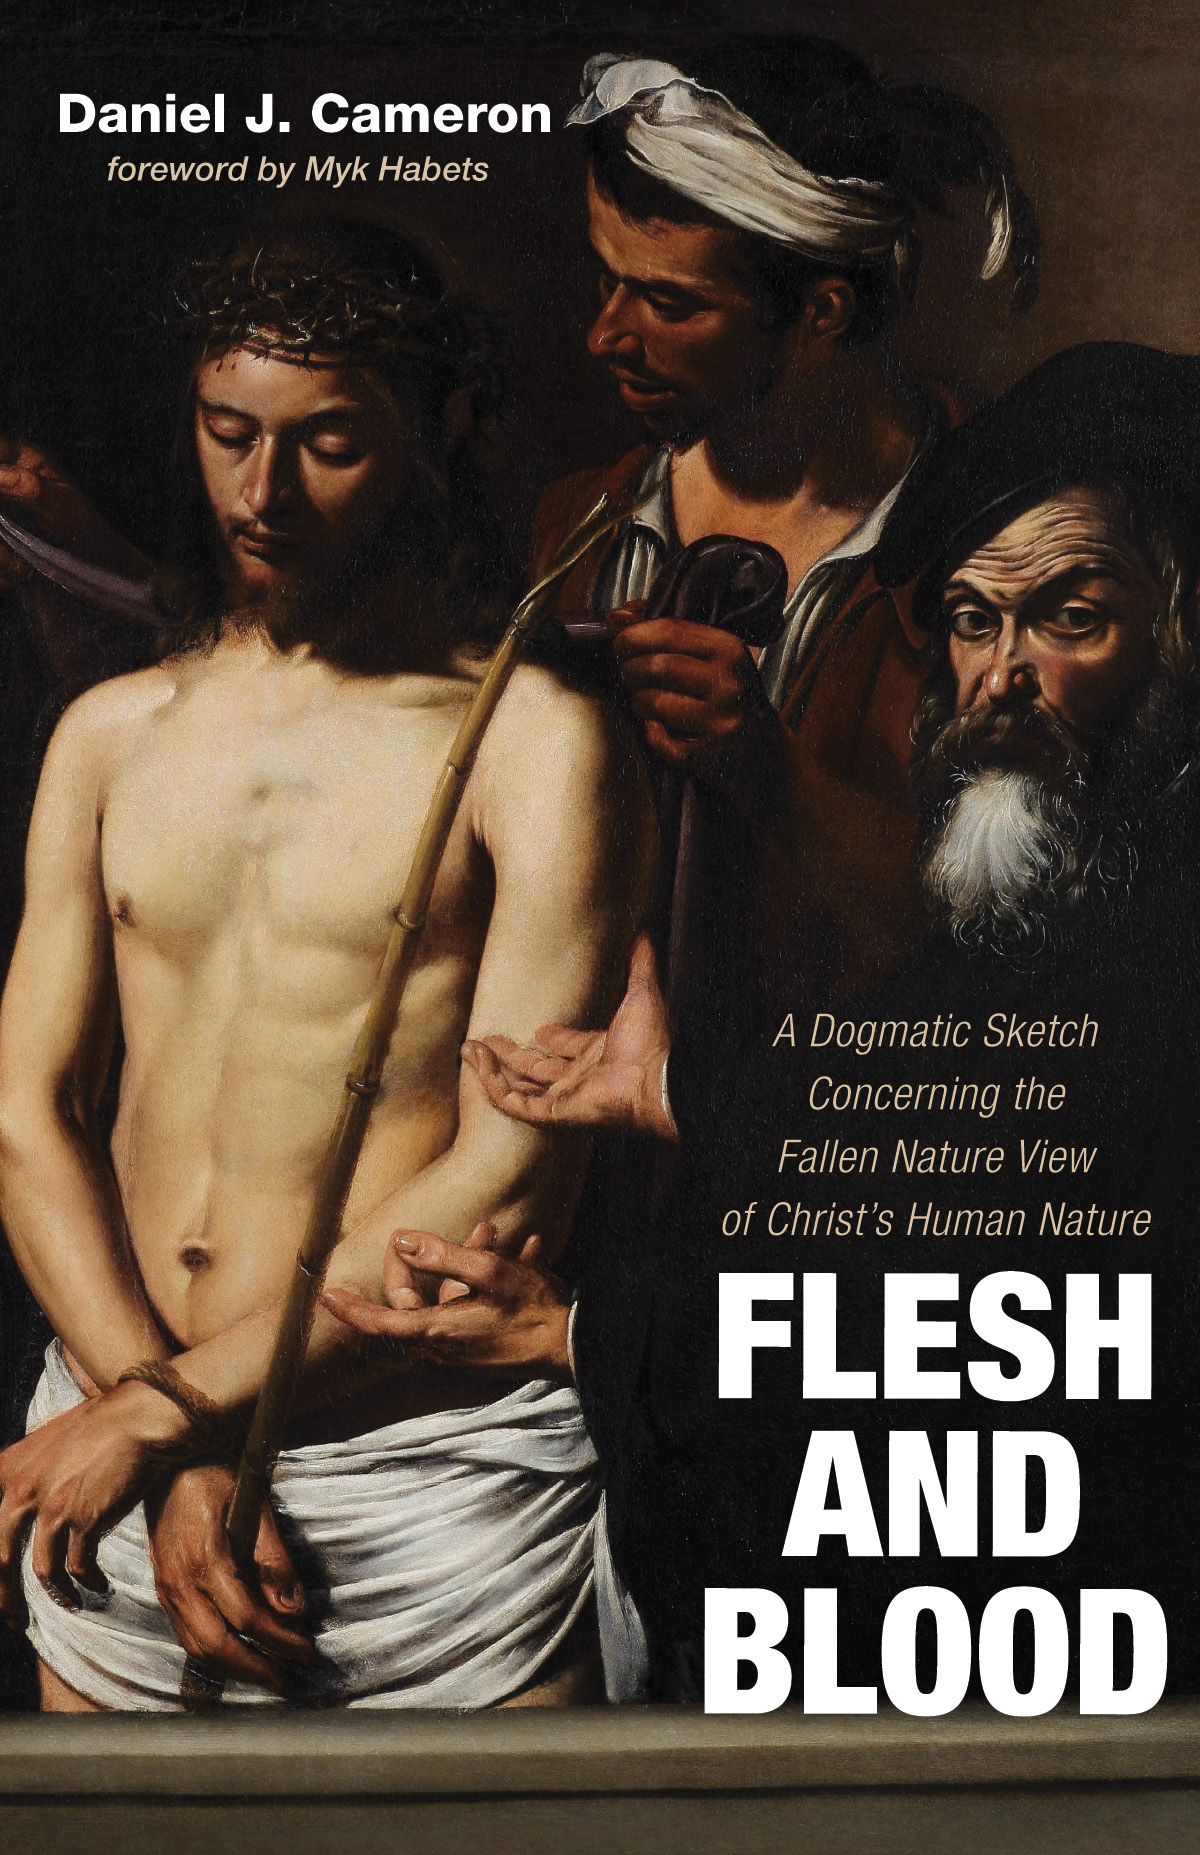 Flesh and Blood: A Dogmatic Sketch Concerning the Fallen Nature View of Christ's Human Nature